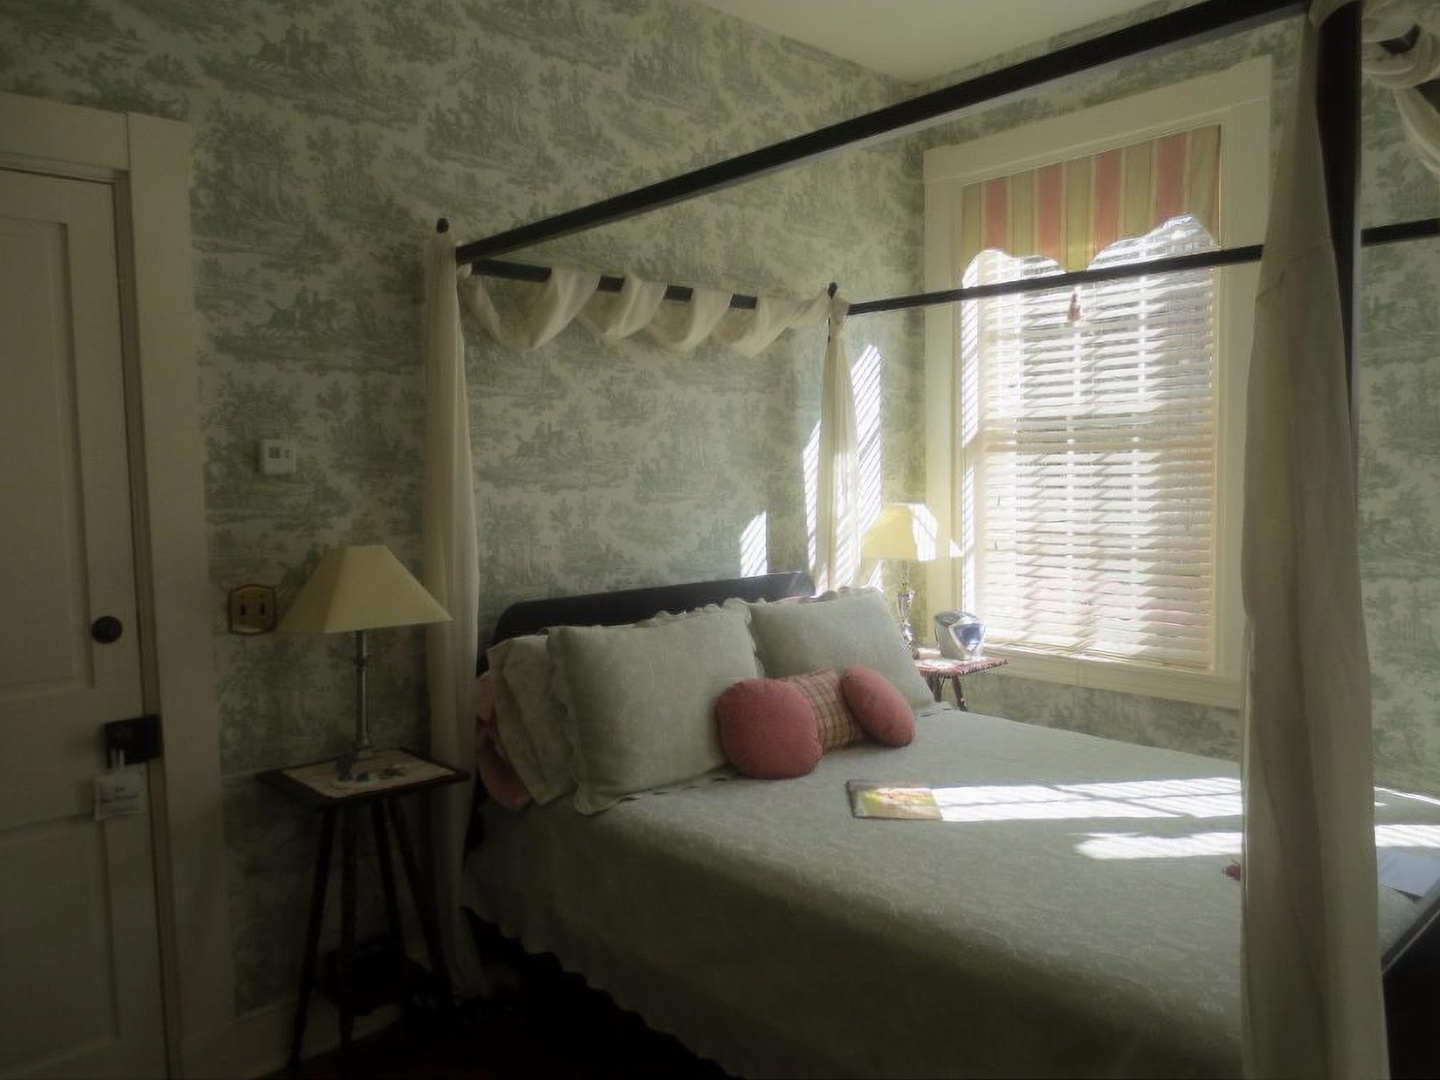 A bedroom with a bed and a mirror in a room at Rocky Springs Bed & Breakfast.